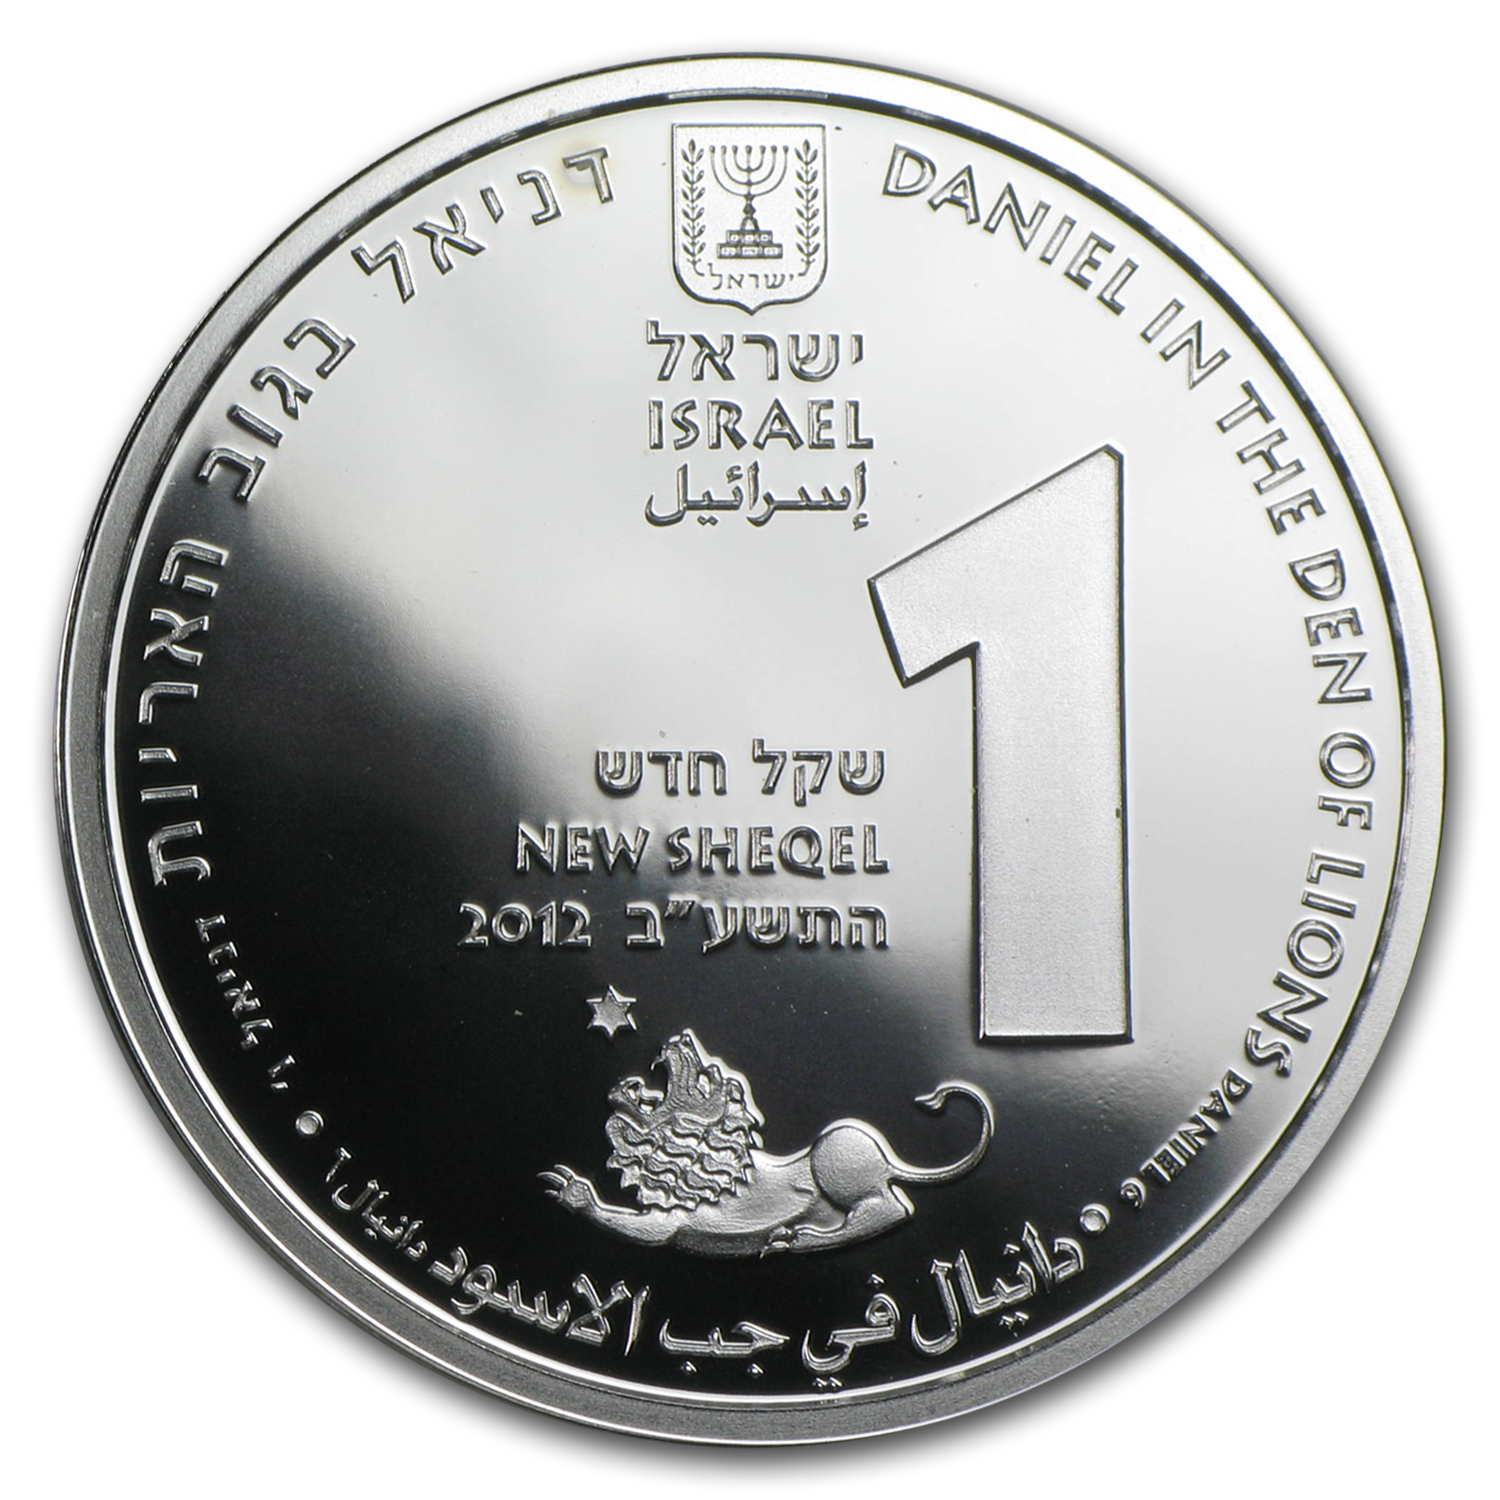 2012 0.428 oz Silver Israel Daniel in the Lion's Den 1 NIS Pf-Lke